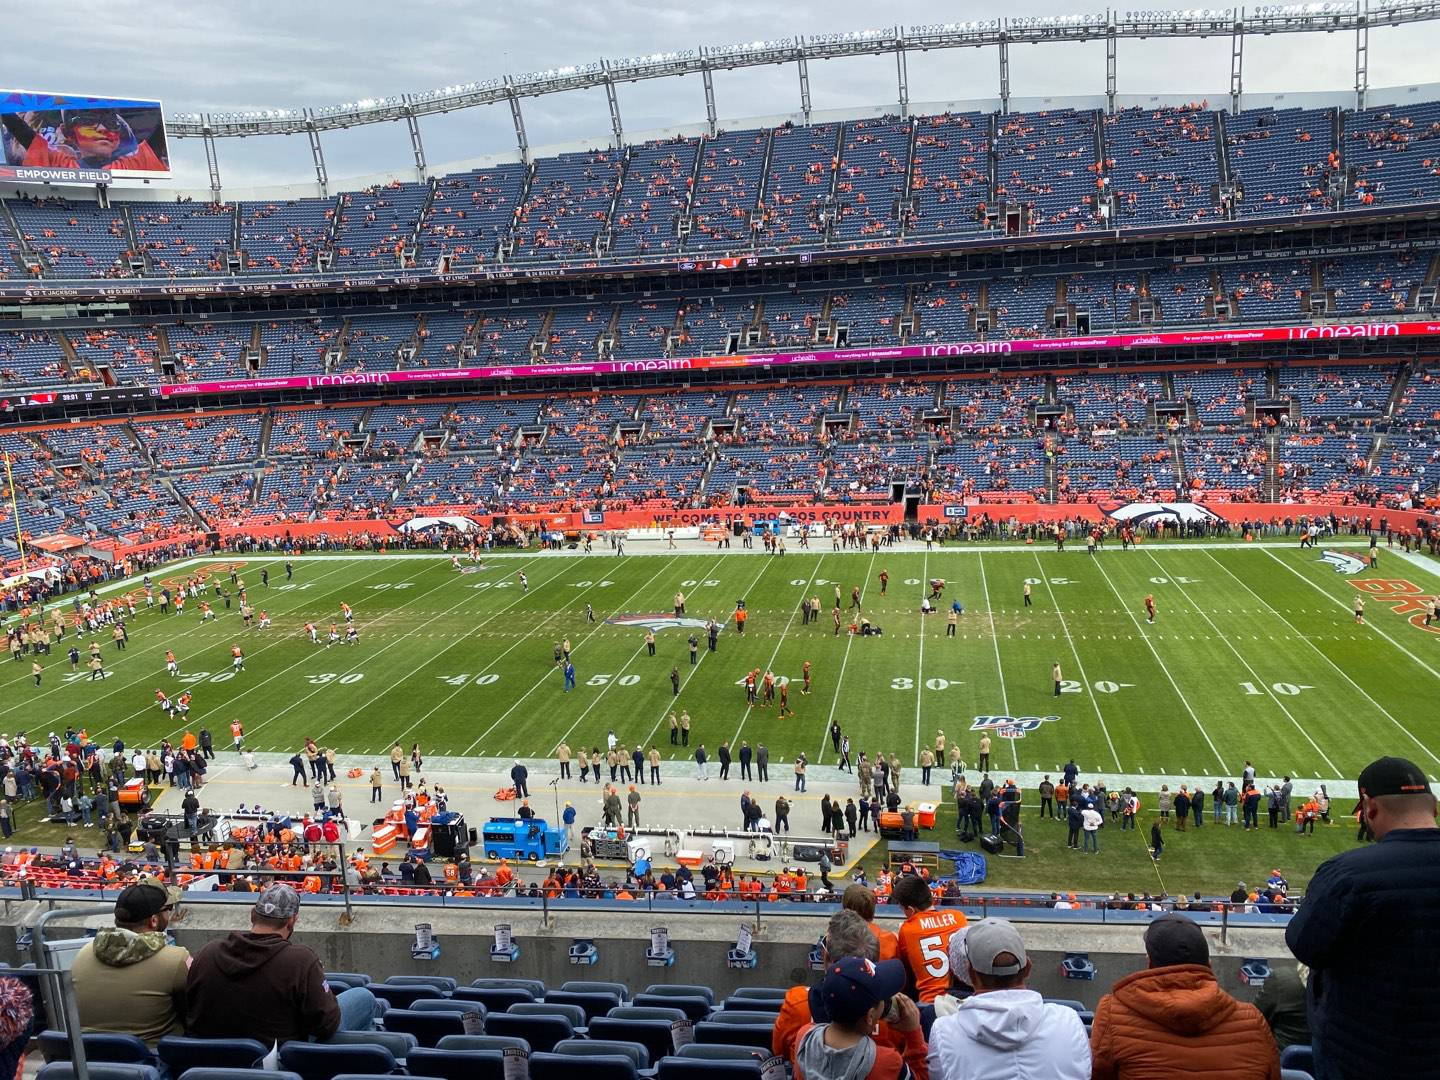 Empower Field at Mile High Stadium Section 307 Row 8 Seat 7